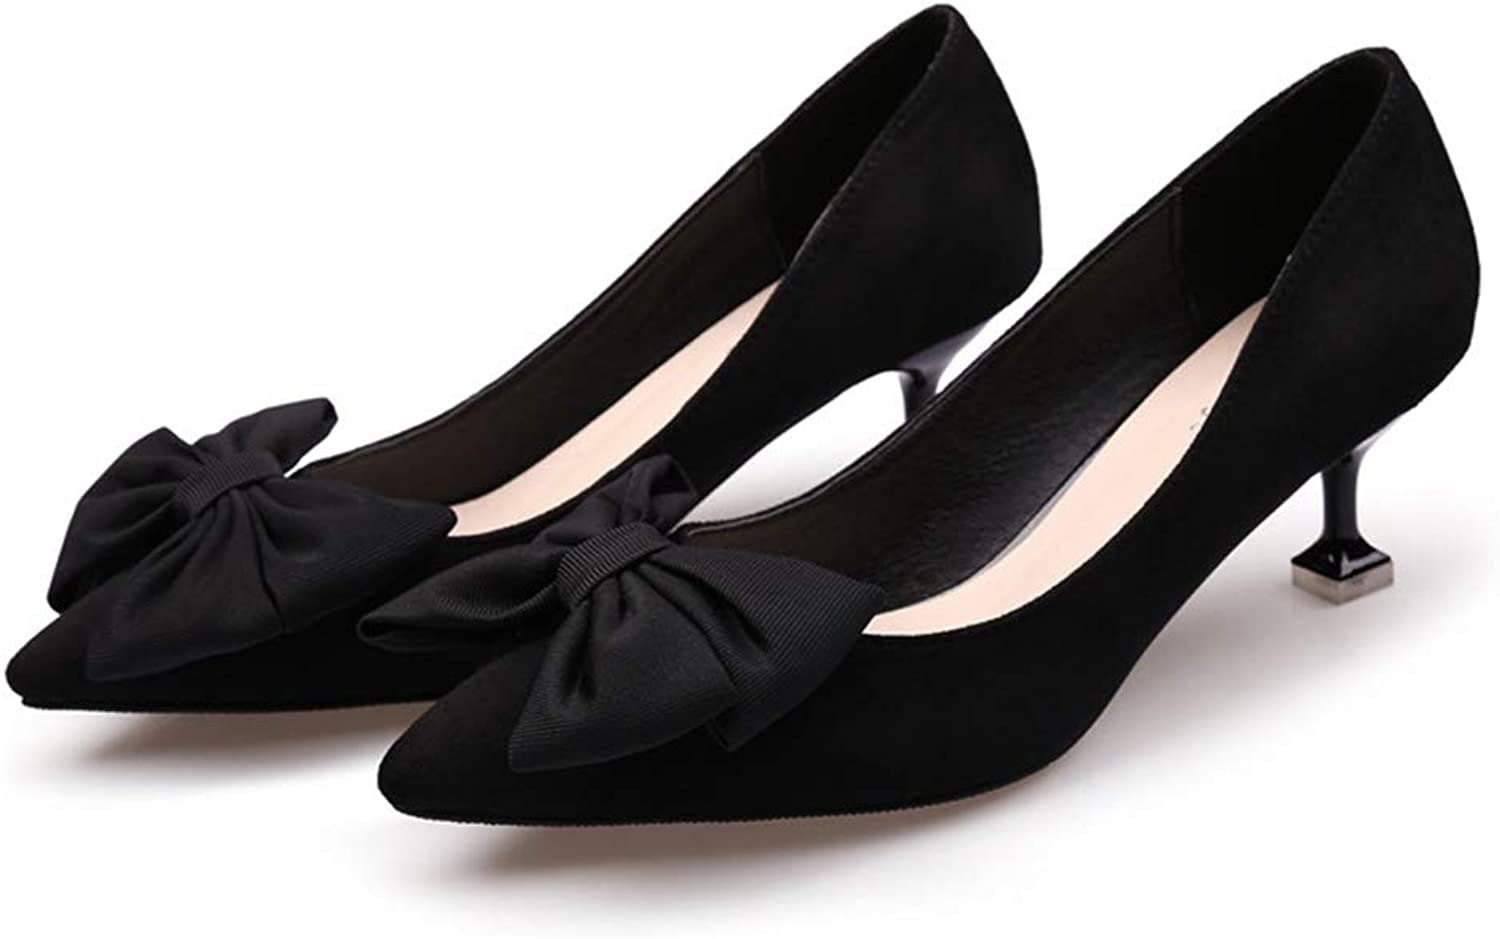 T-JULY Fashion Bowknot Suede Sexy Stilettos High Heel Pumps for Women Pointed Toe Kitten-Heels Slip-on Dress shoes